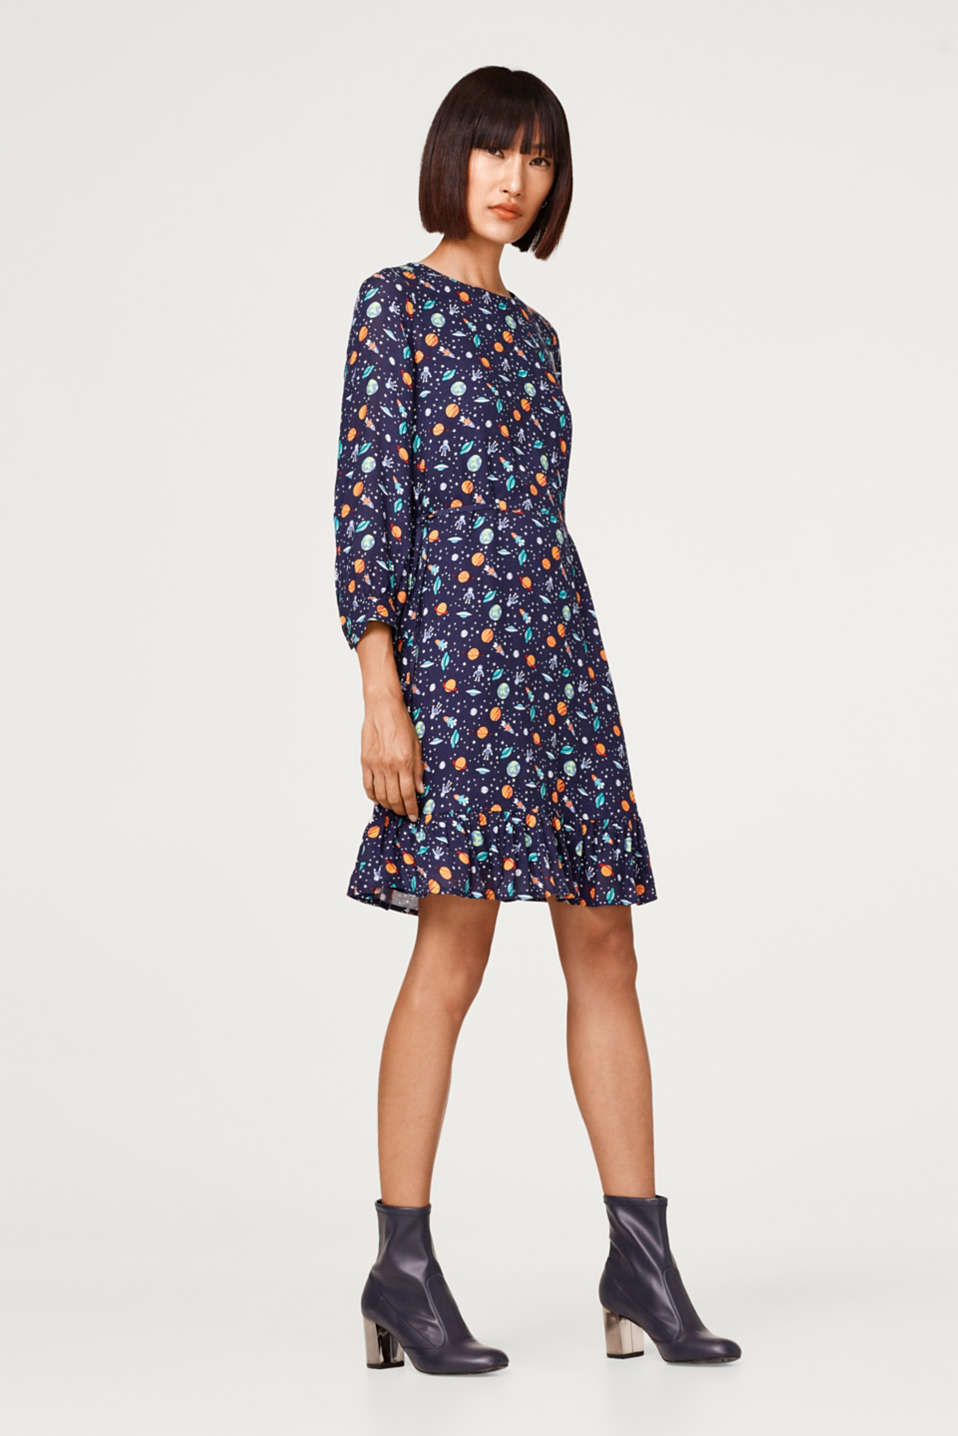 Printed dress with waist ties and a flounce hem